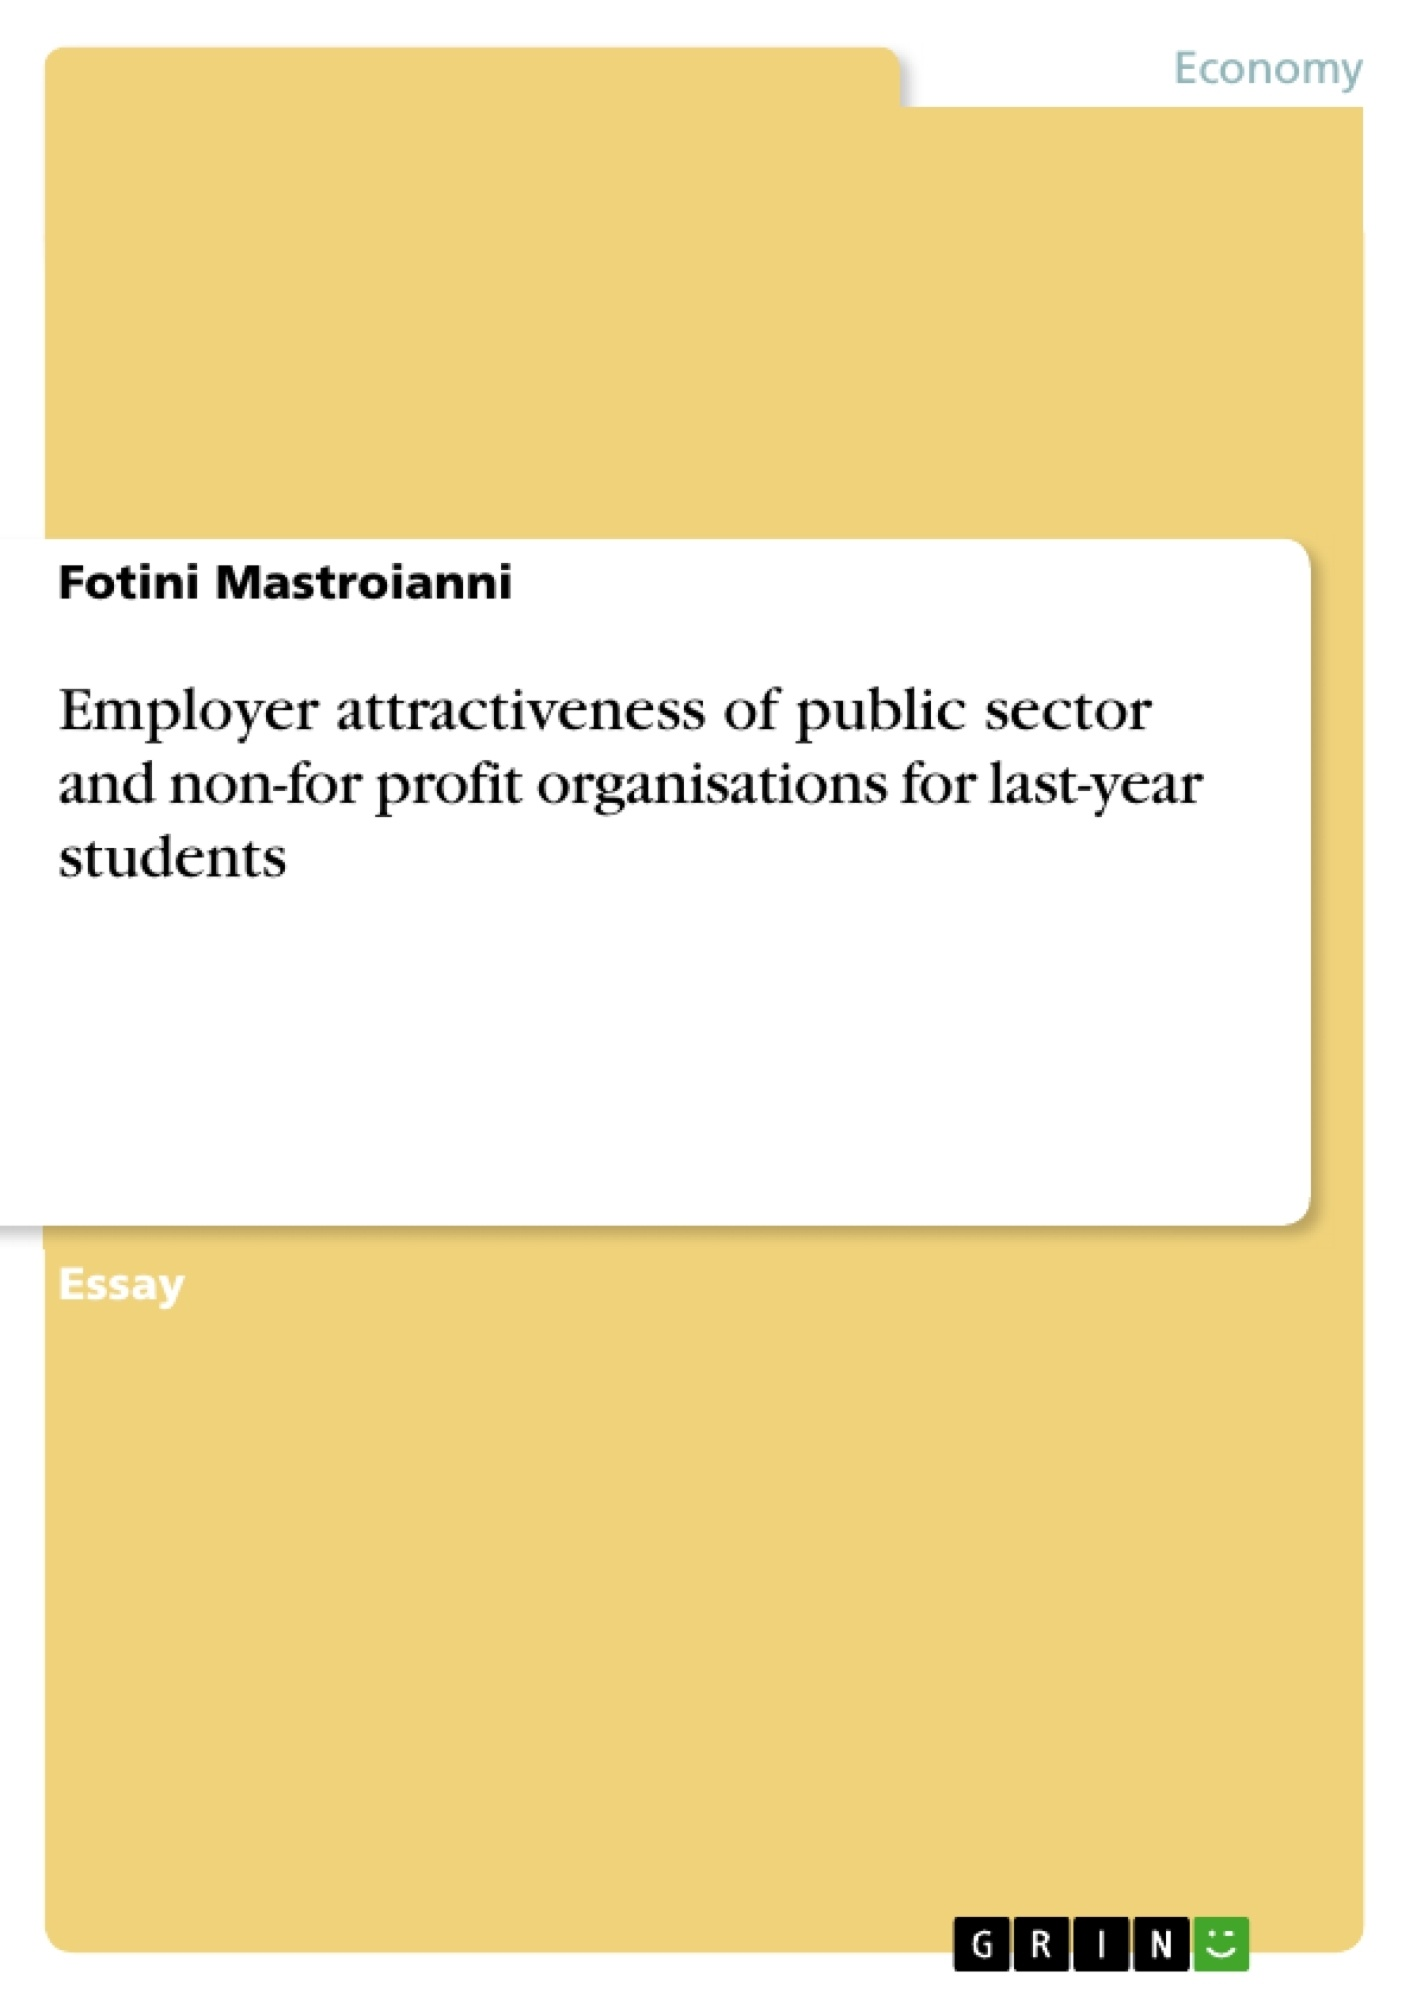 Title: Employer attractiveness of public sector and non-for profit organisations for last-year students